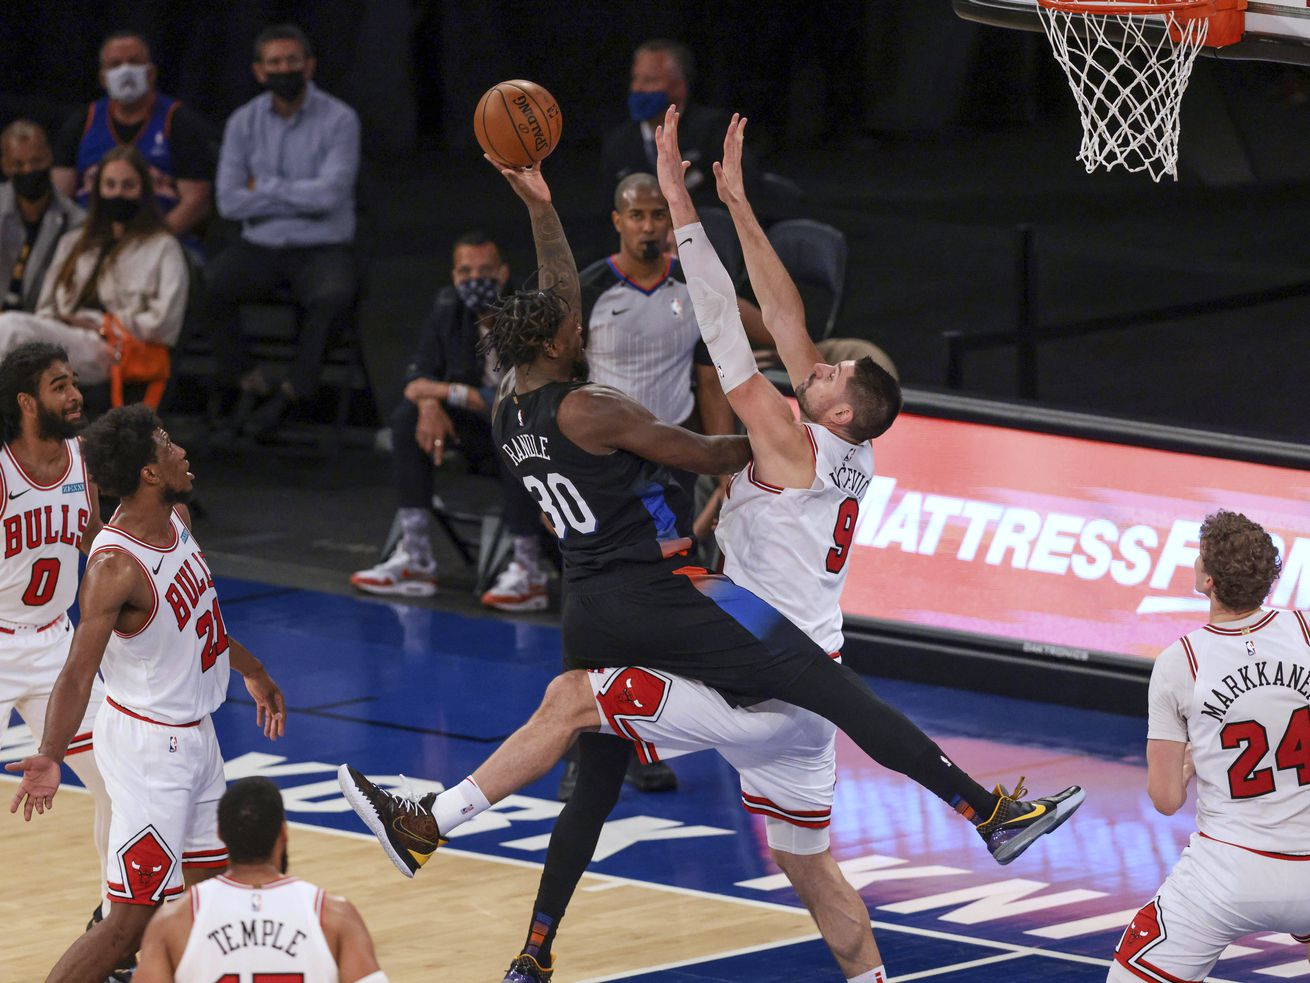 Knicks forward Julius Randle (30) shoots against Bulls center Nikola Vucevich on Wednesday night. Randle scored 34 points to lead the Knicks to a 113-94 victory at Madison Square Garden.